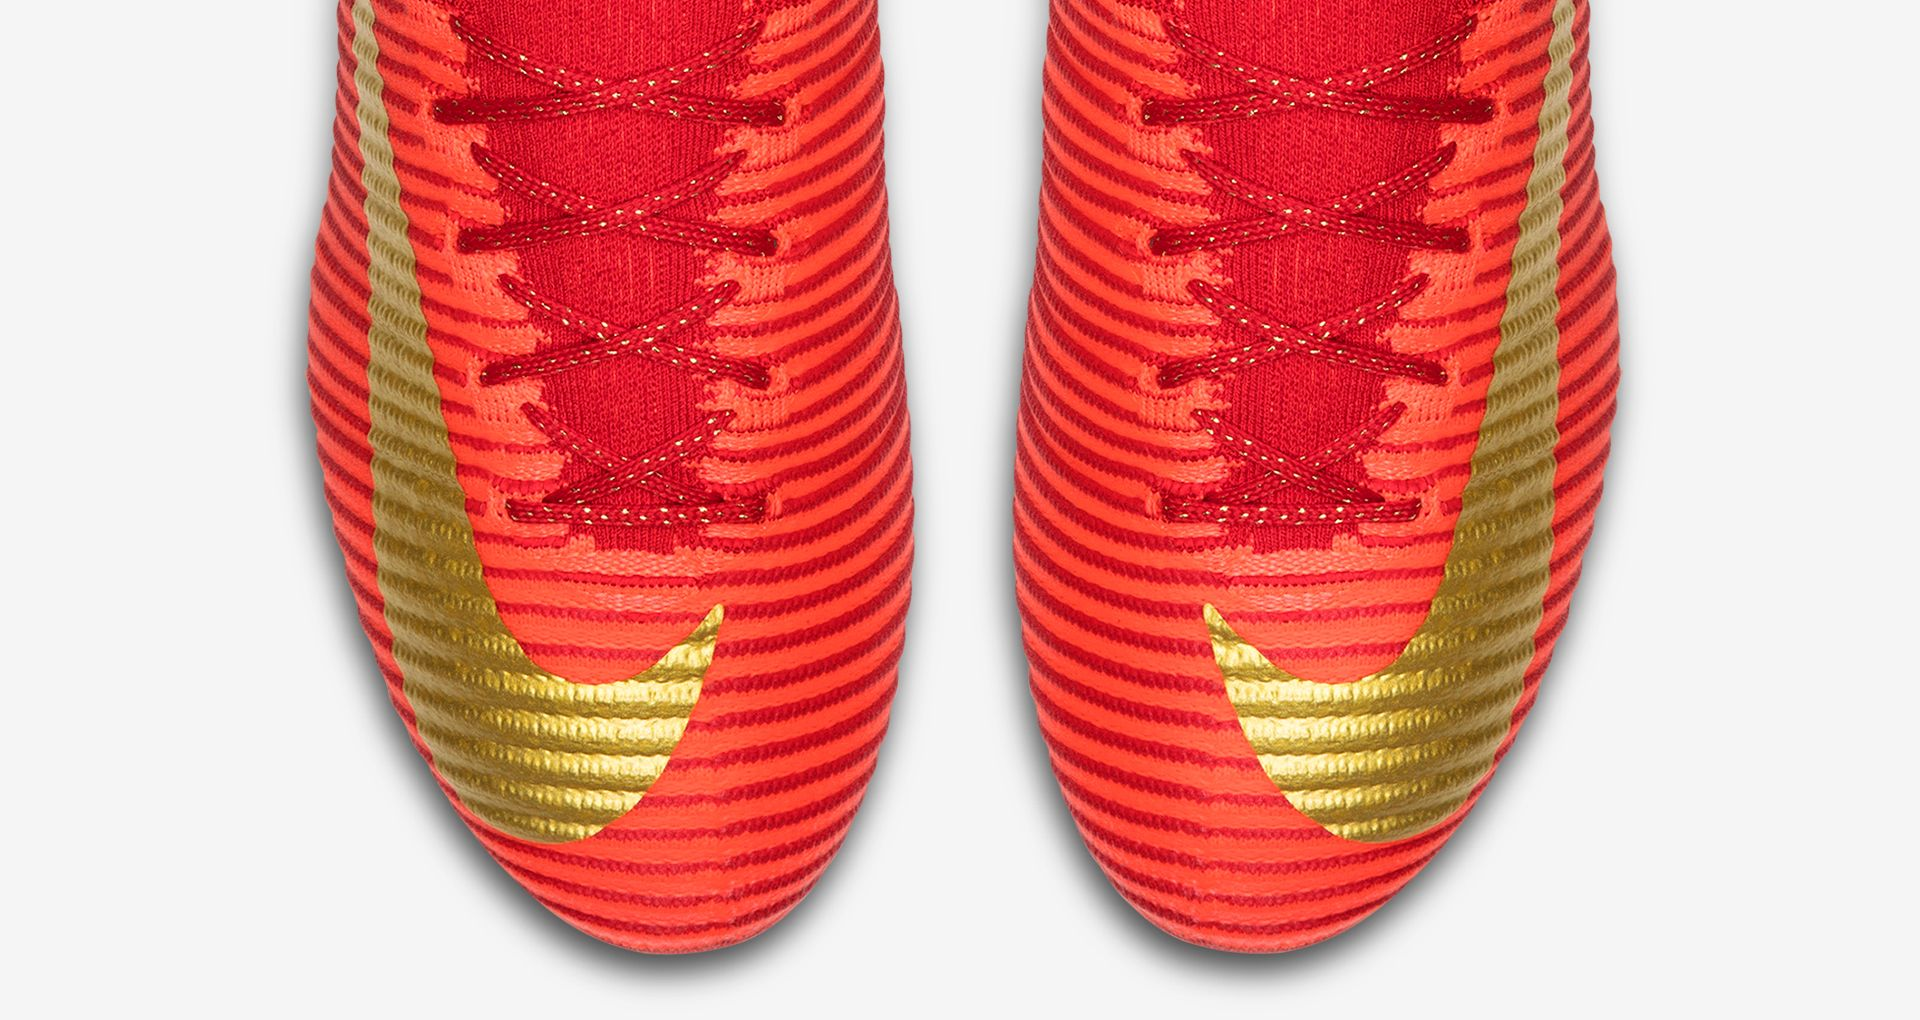 9eb5b1c70f95 ... The boot builds on the design of the CR7 Vitórias Mercurial, providing  a Portuguese counter ...